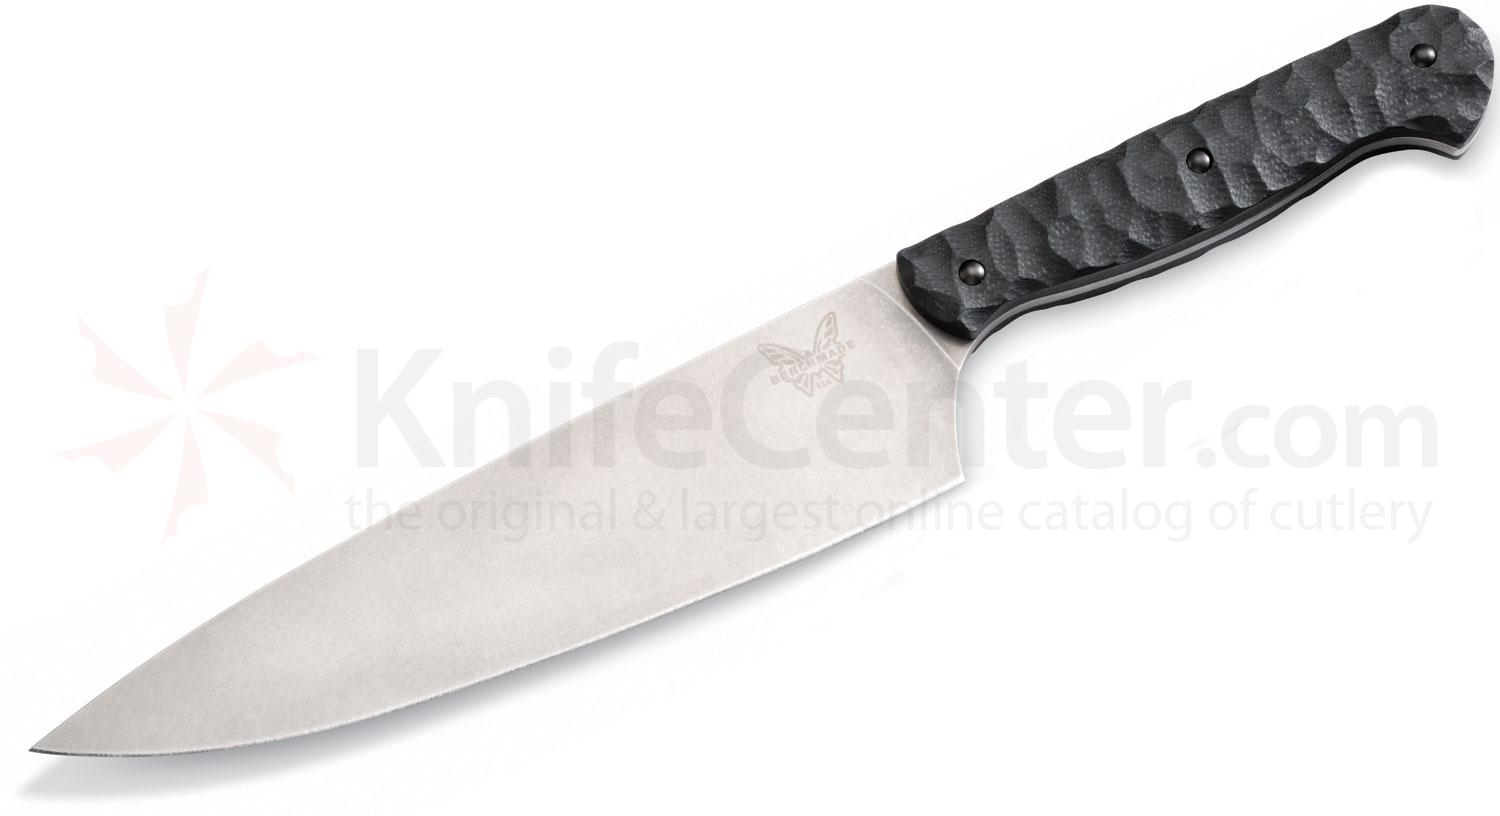 Benchmade Model 4580 Prestigedge Kitchen 8 inch Chef's Knife, G10 Handles